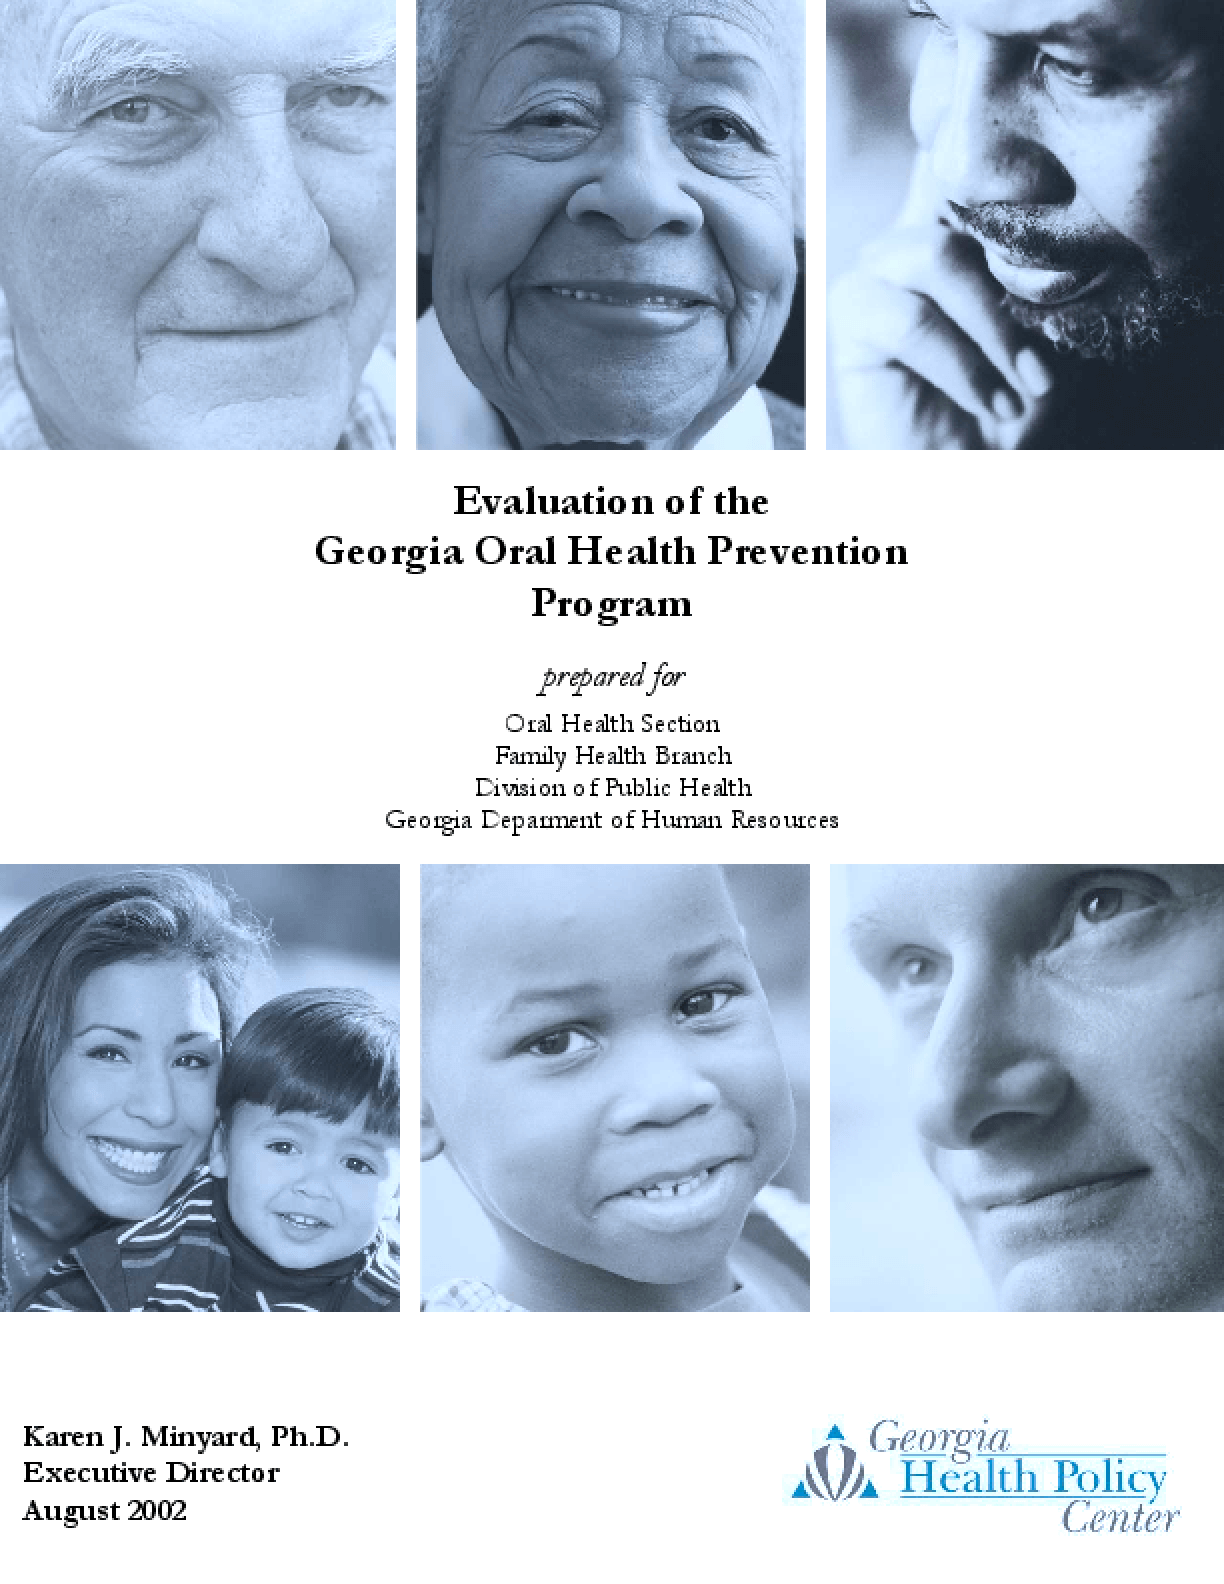 CY2000 Evaluation of the Georgia Oral Health Prevention Program